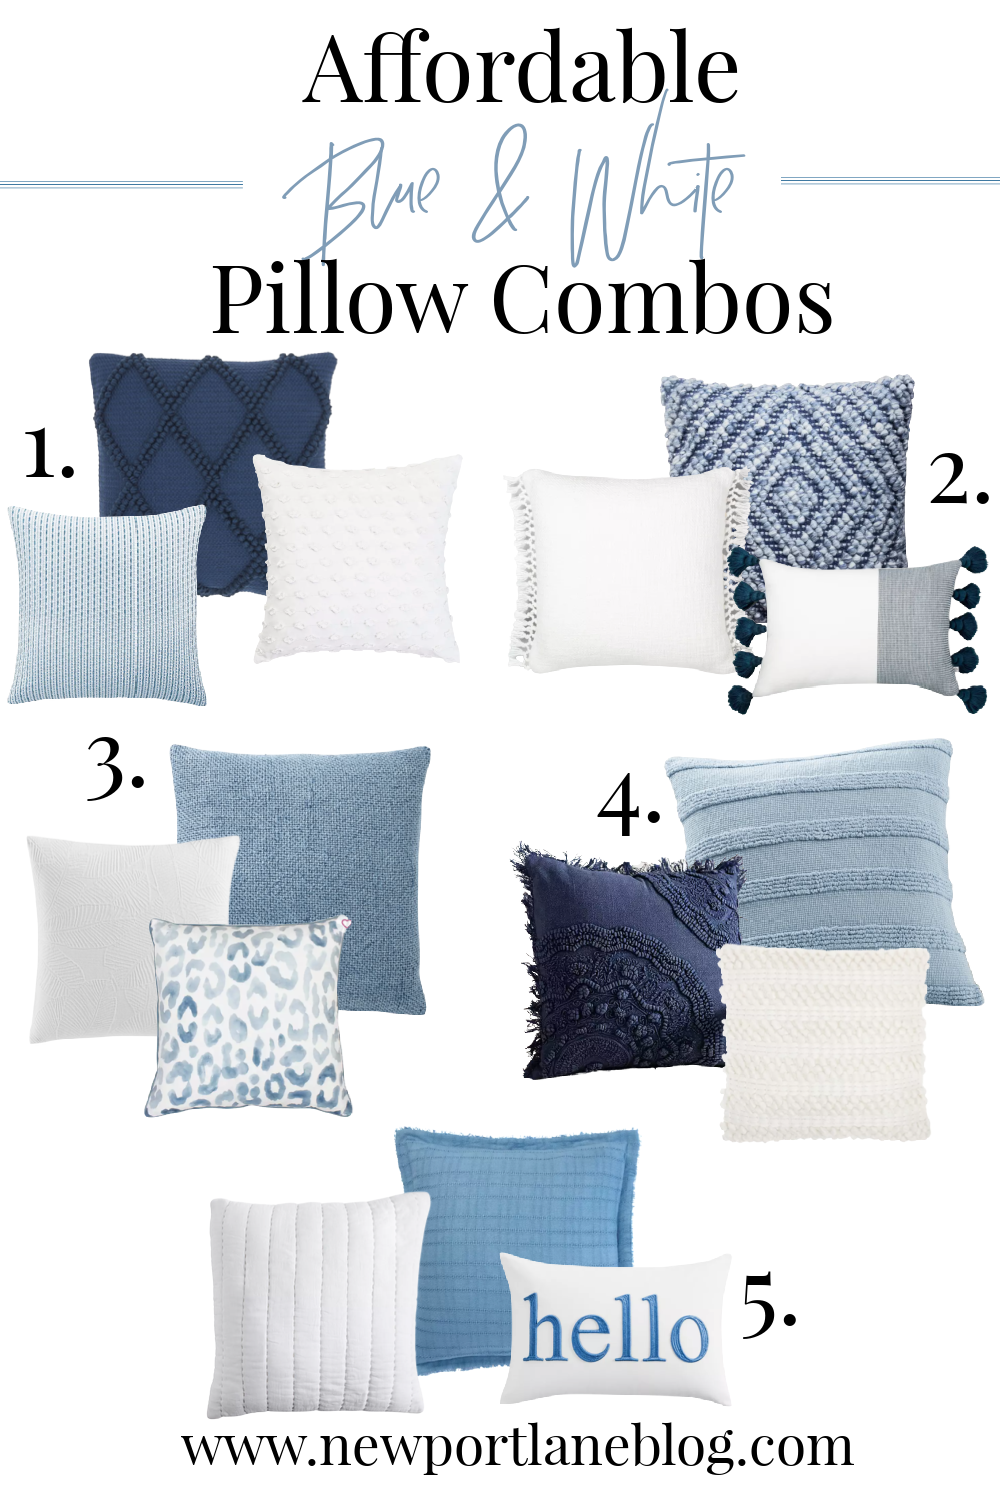 Blue and White Pillows - Light Blue and White Pillows - Blue Decorative Pillows - Blue and White Pillows Target - Blue and White Pillows Amazon - Navy Blue and White Throw Pillows - Etsy Blue and White Pillows